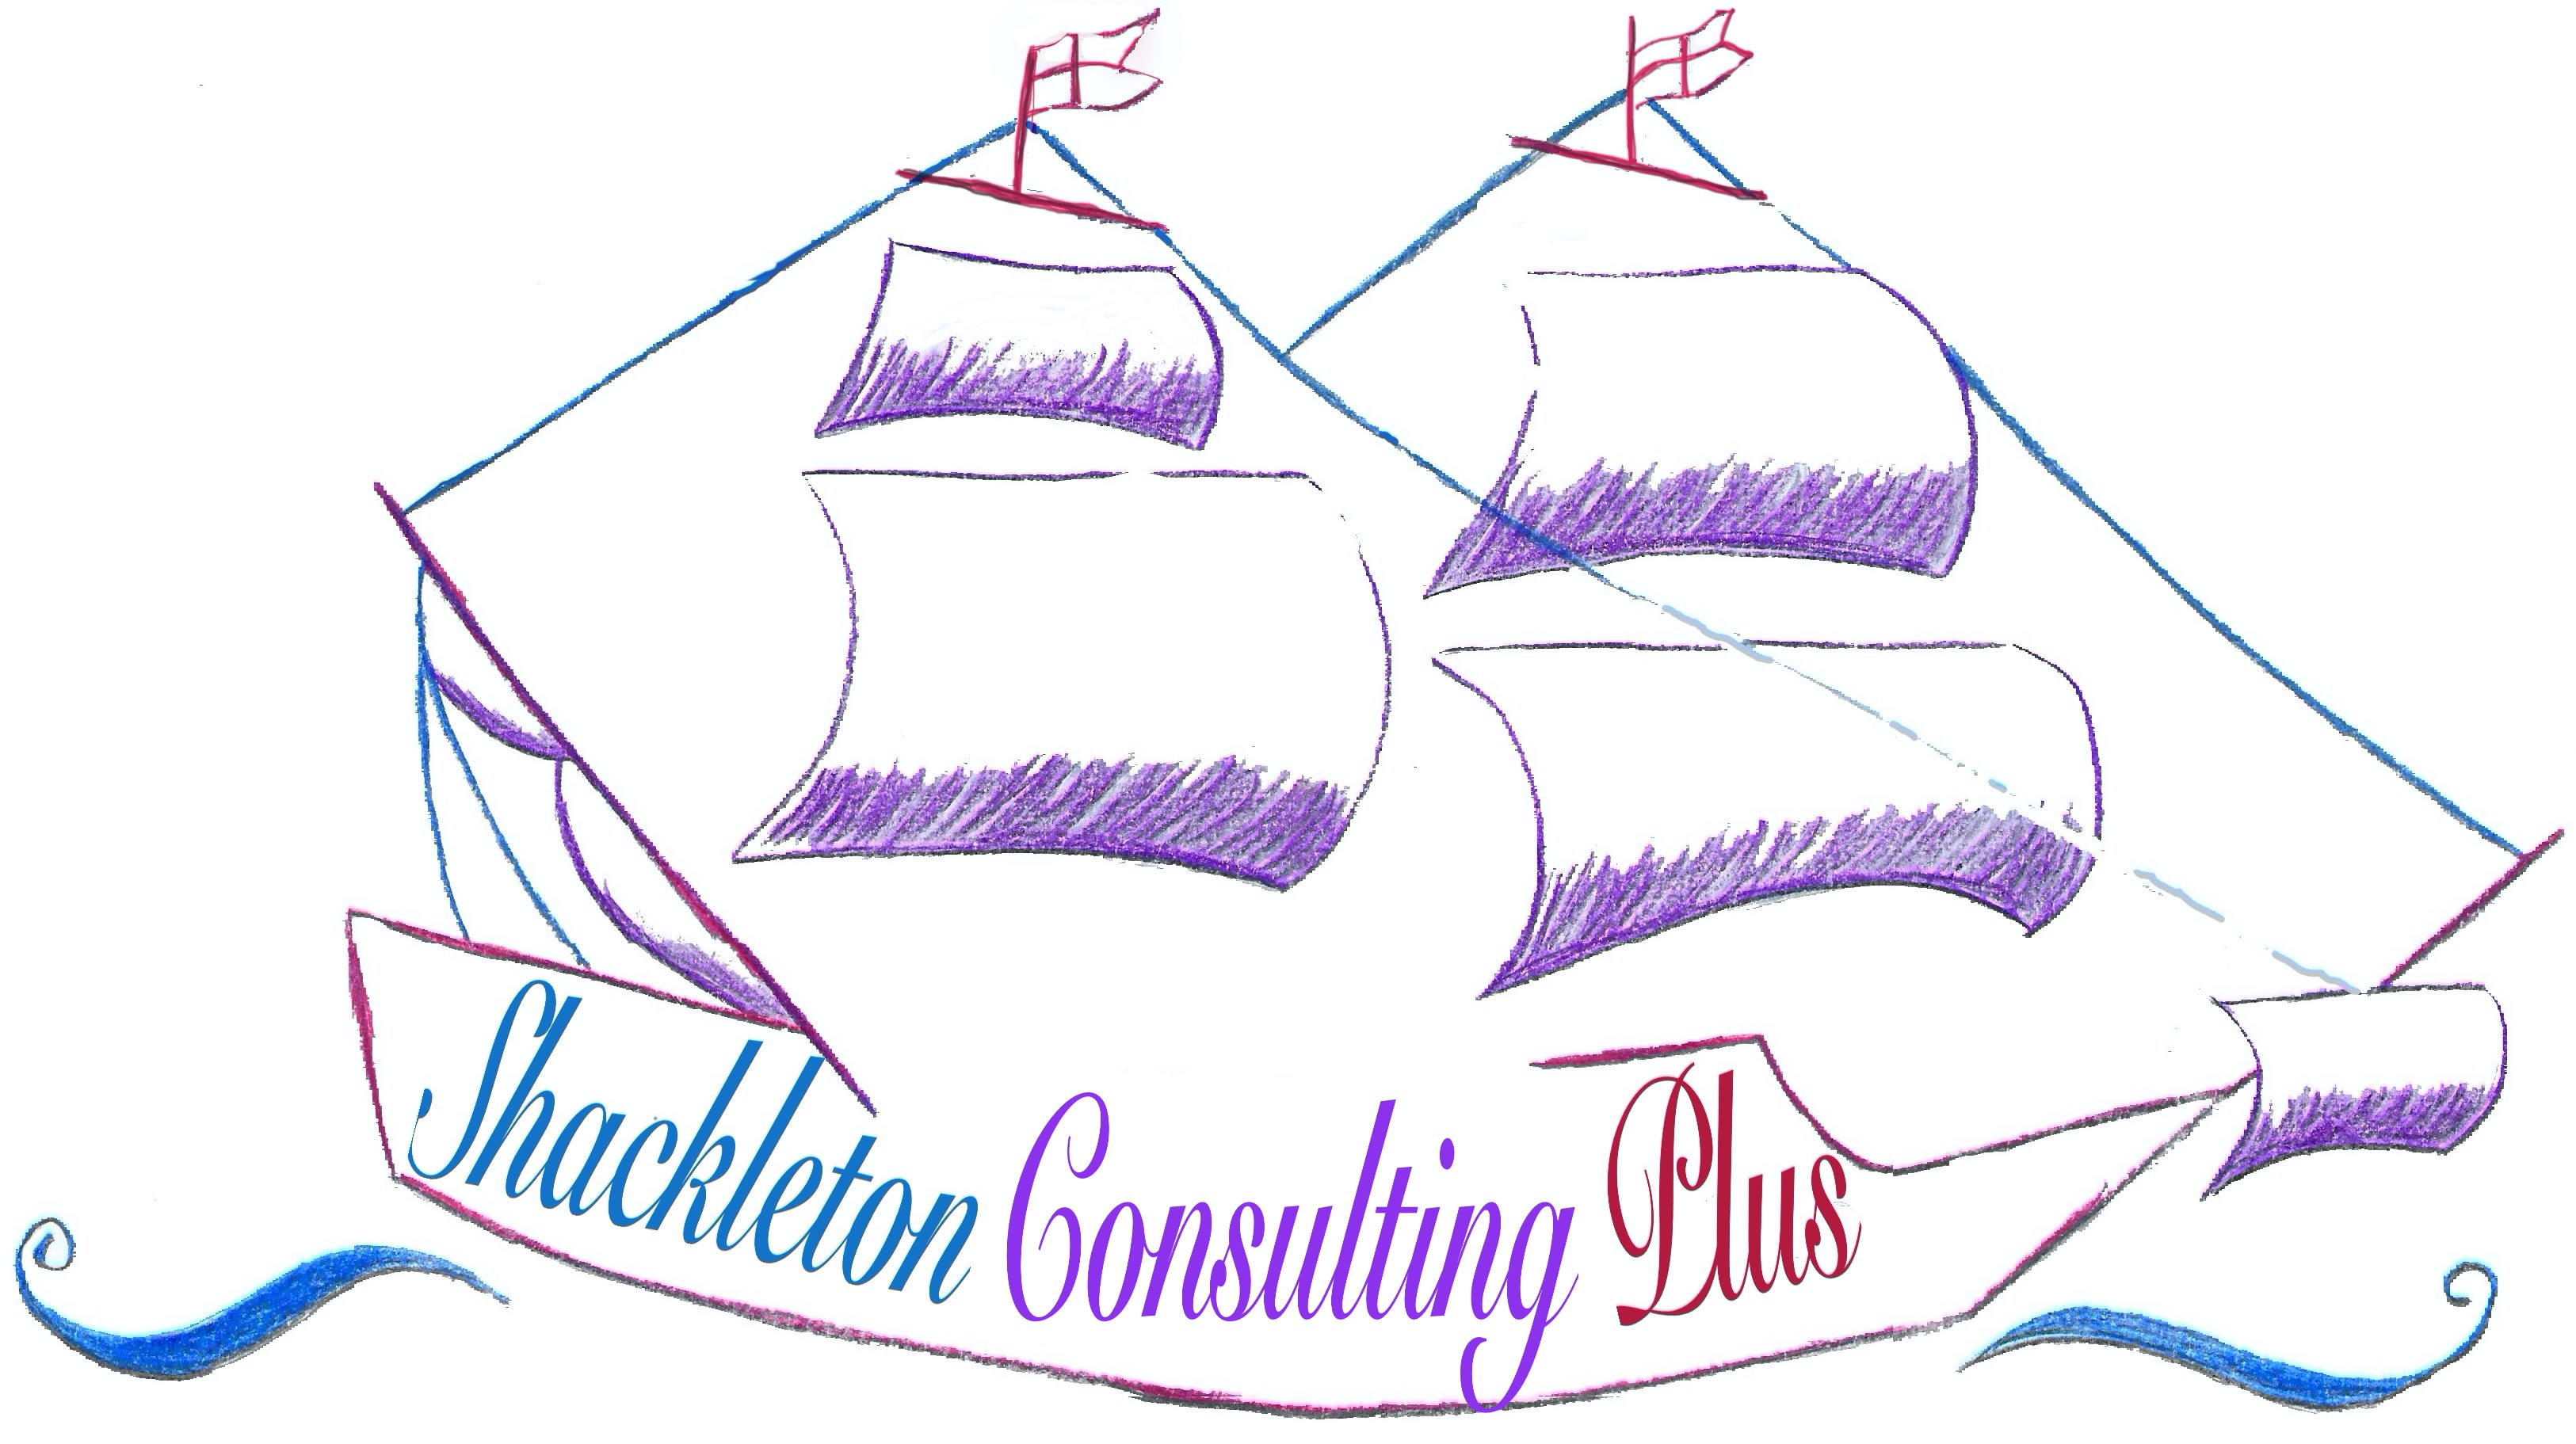 Shackleton Consulting Plus +